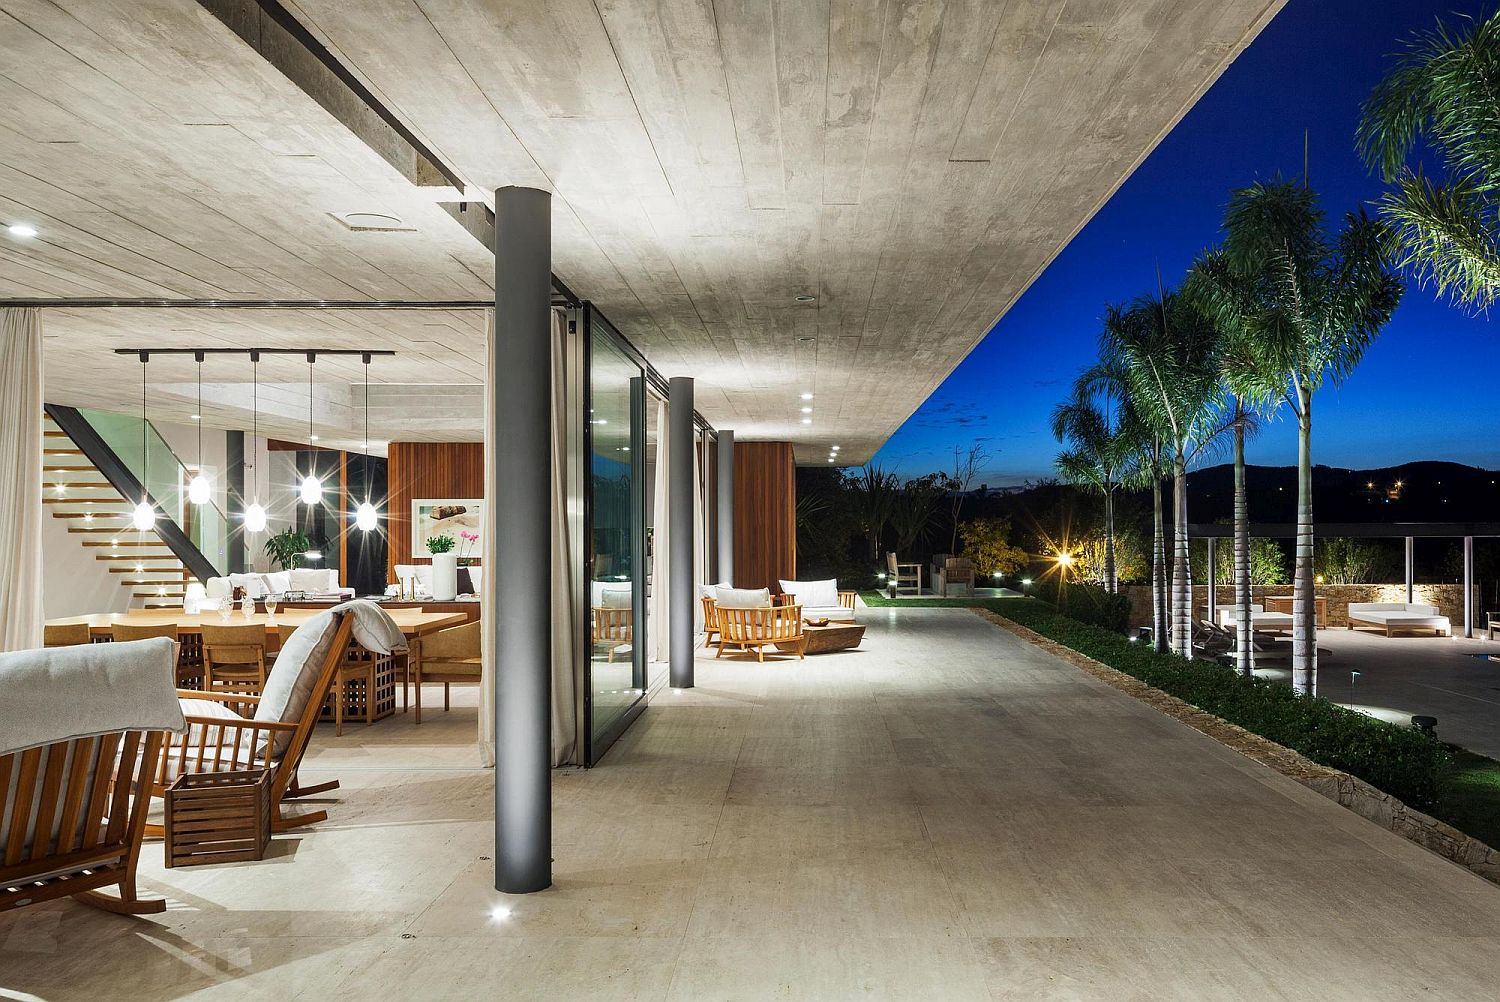 Shaded deck extends the living space outdoors